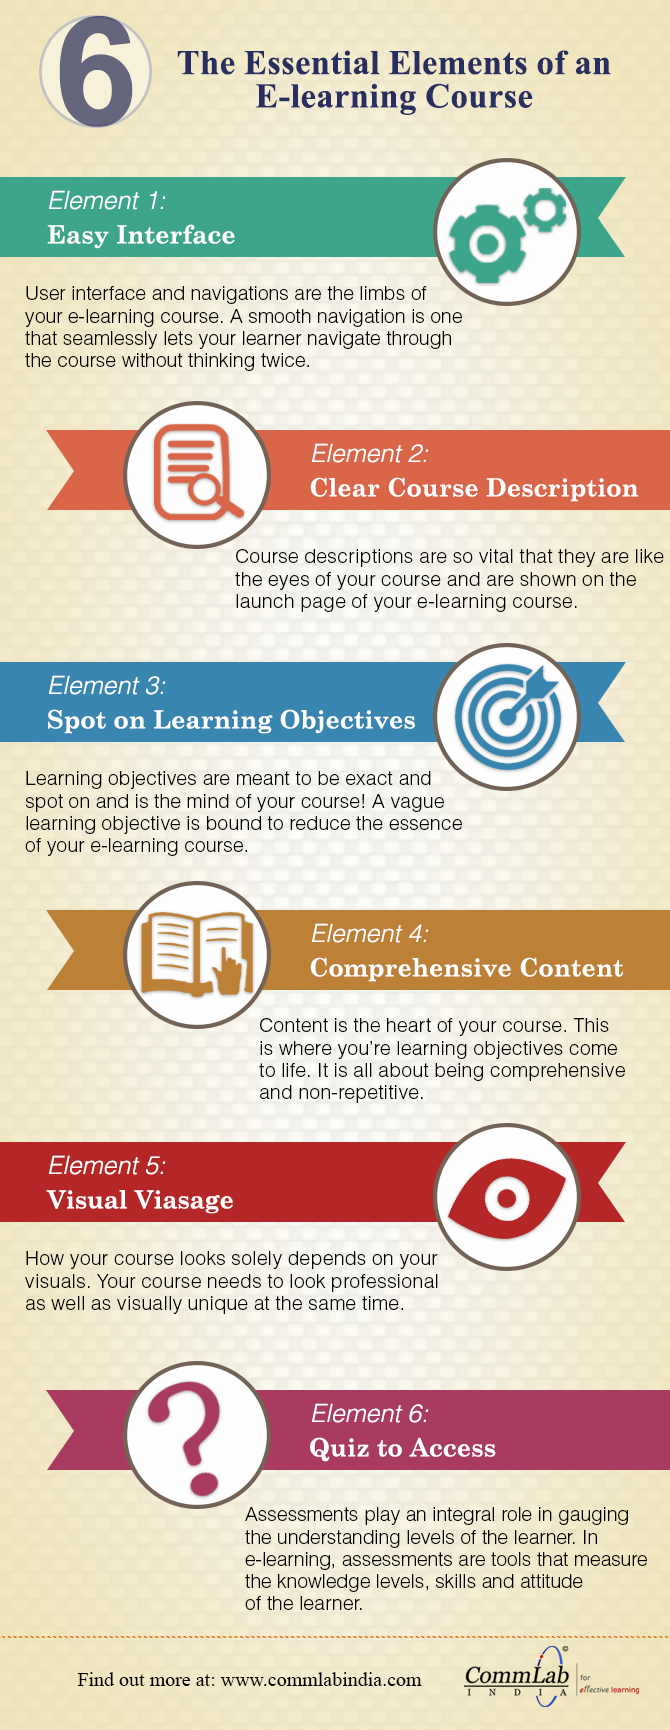 essentials of elearning course